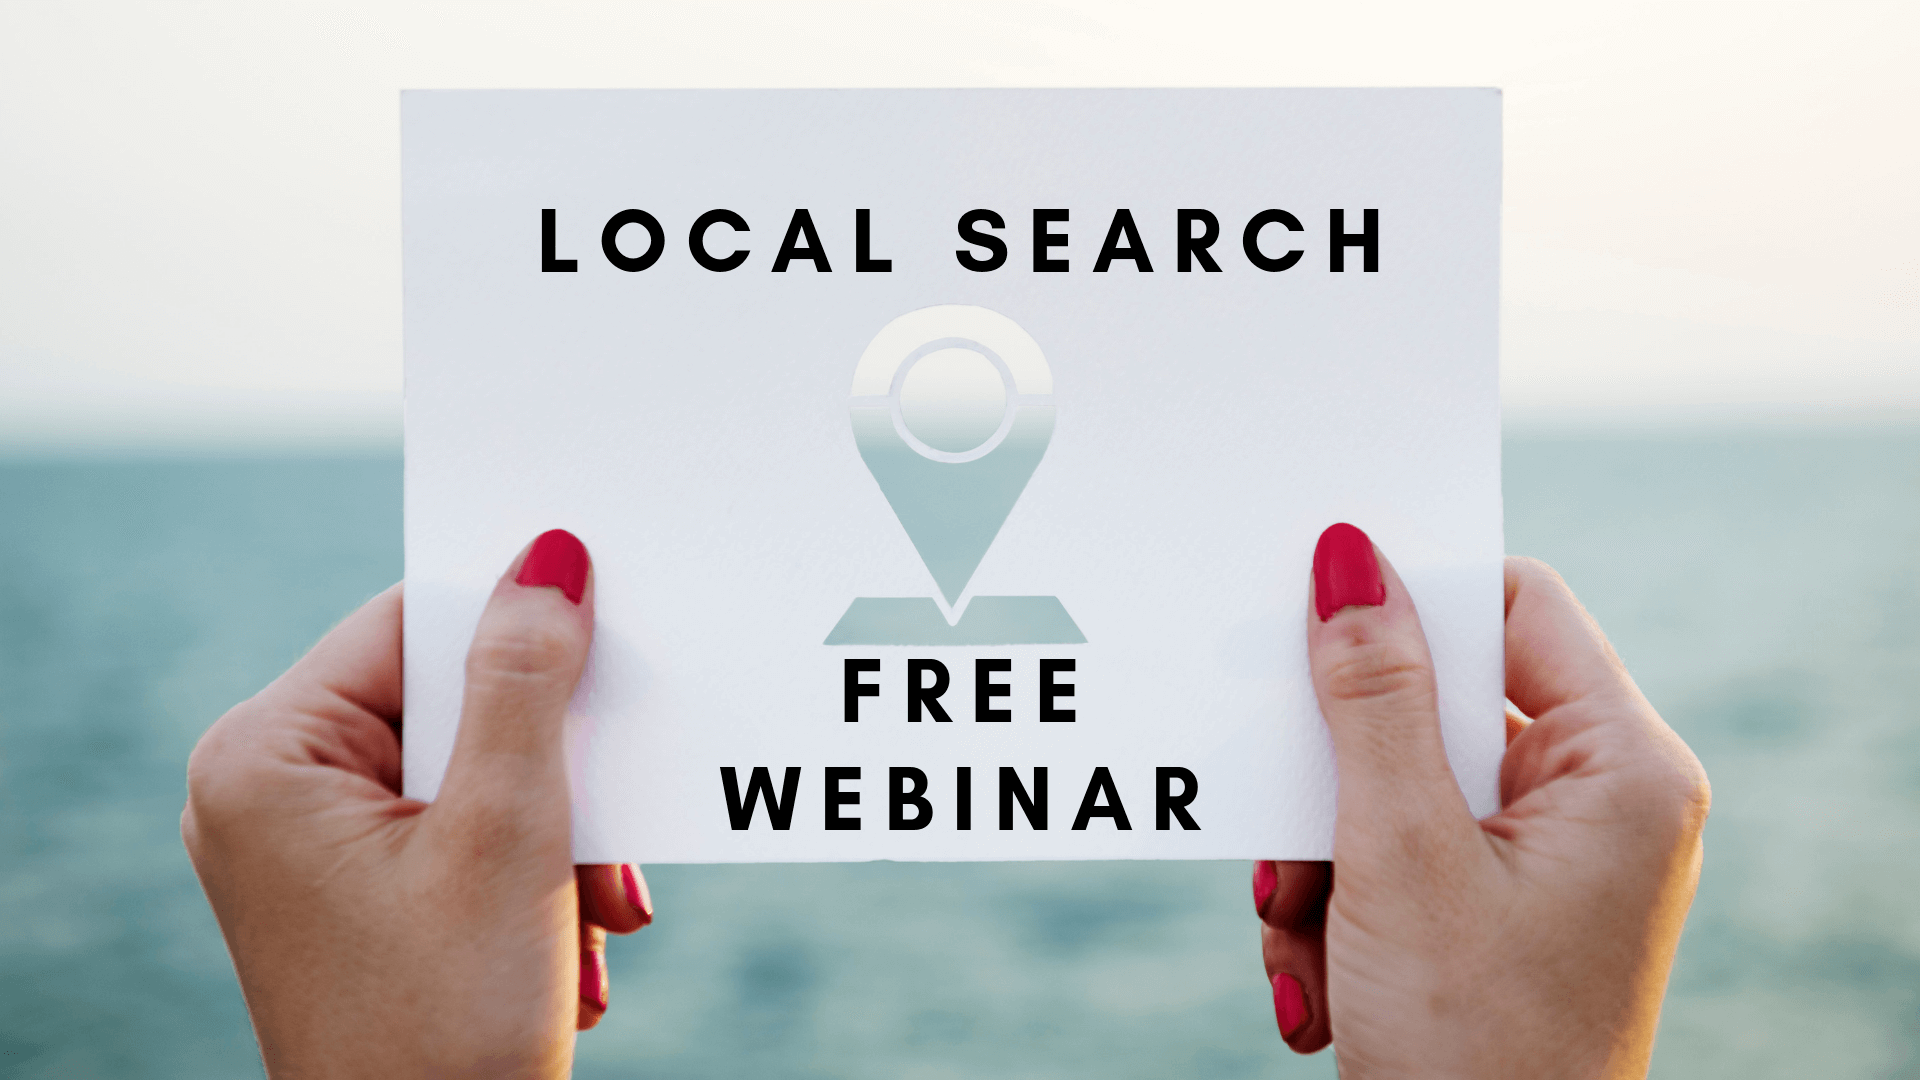 WANT MORE WEBSITE TRAFFIC? How Small Businesses Can Leverage the Power of Local Search